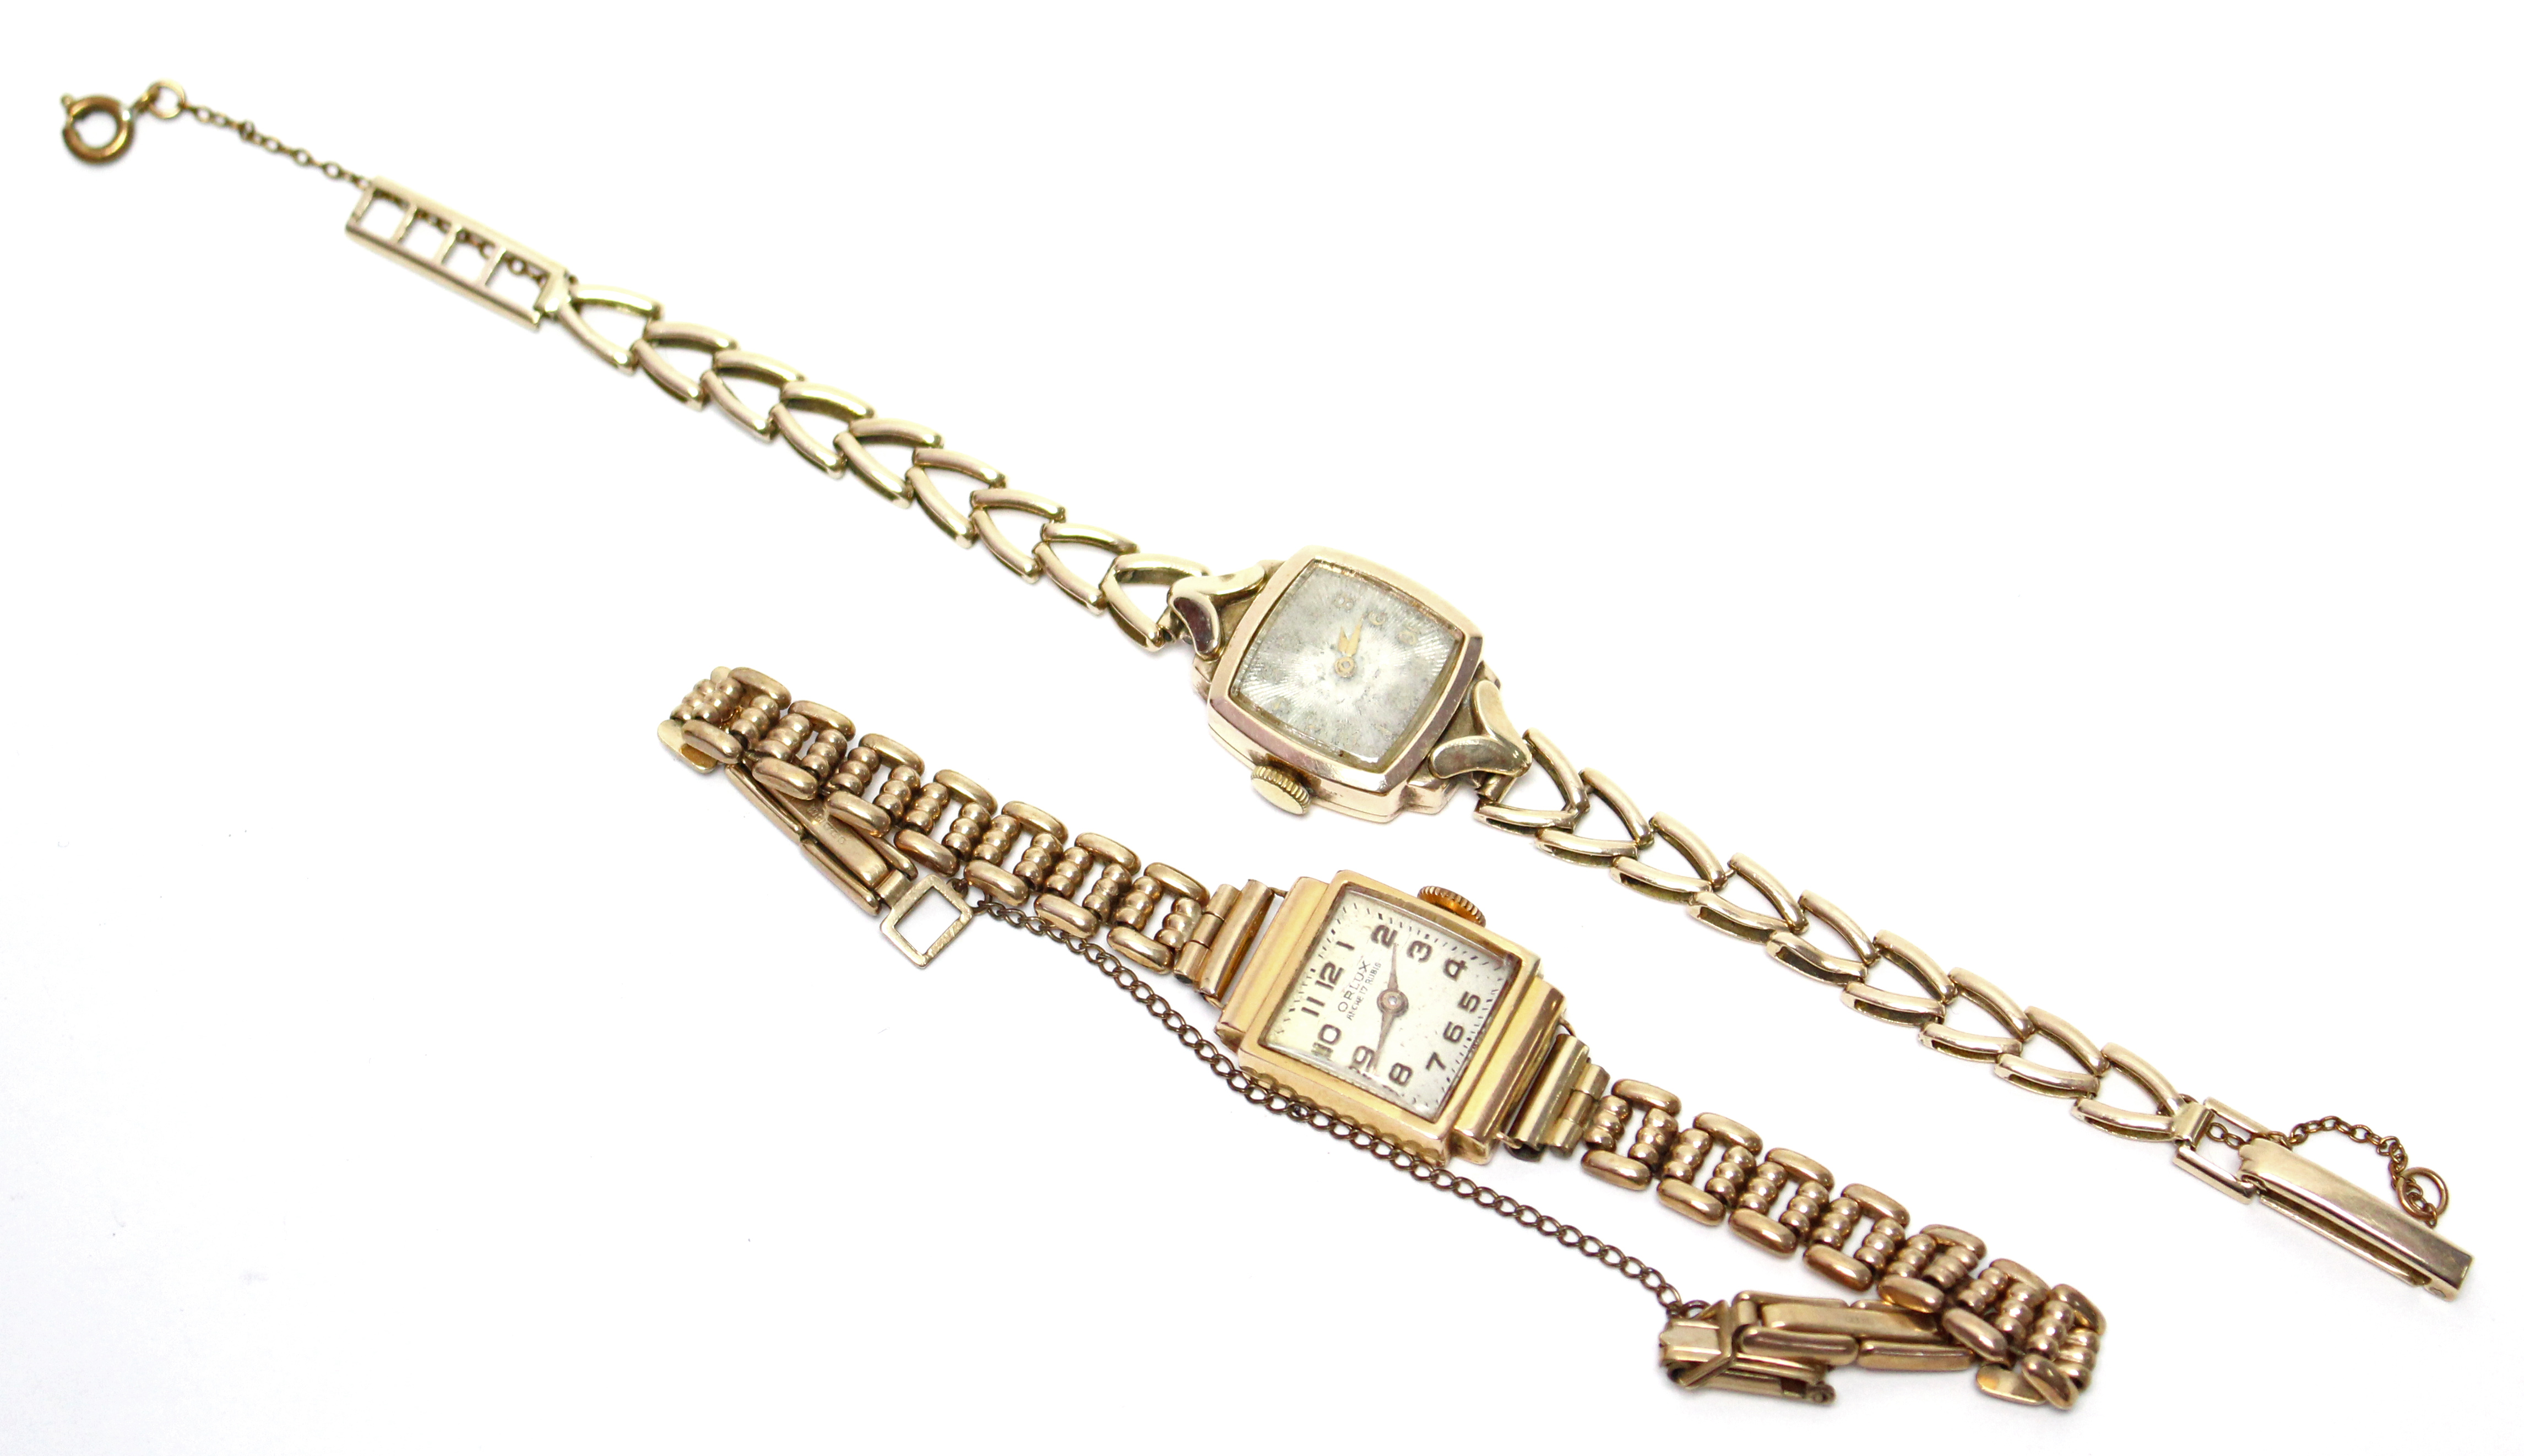 Lot 28 - Two 9ct. gold ladies' wristwatches, each with 9ct. flexible bracelet. (22.5 gm total, including